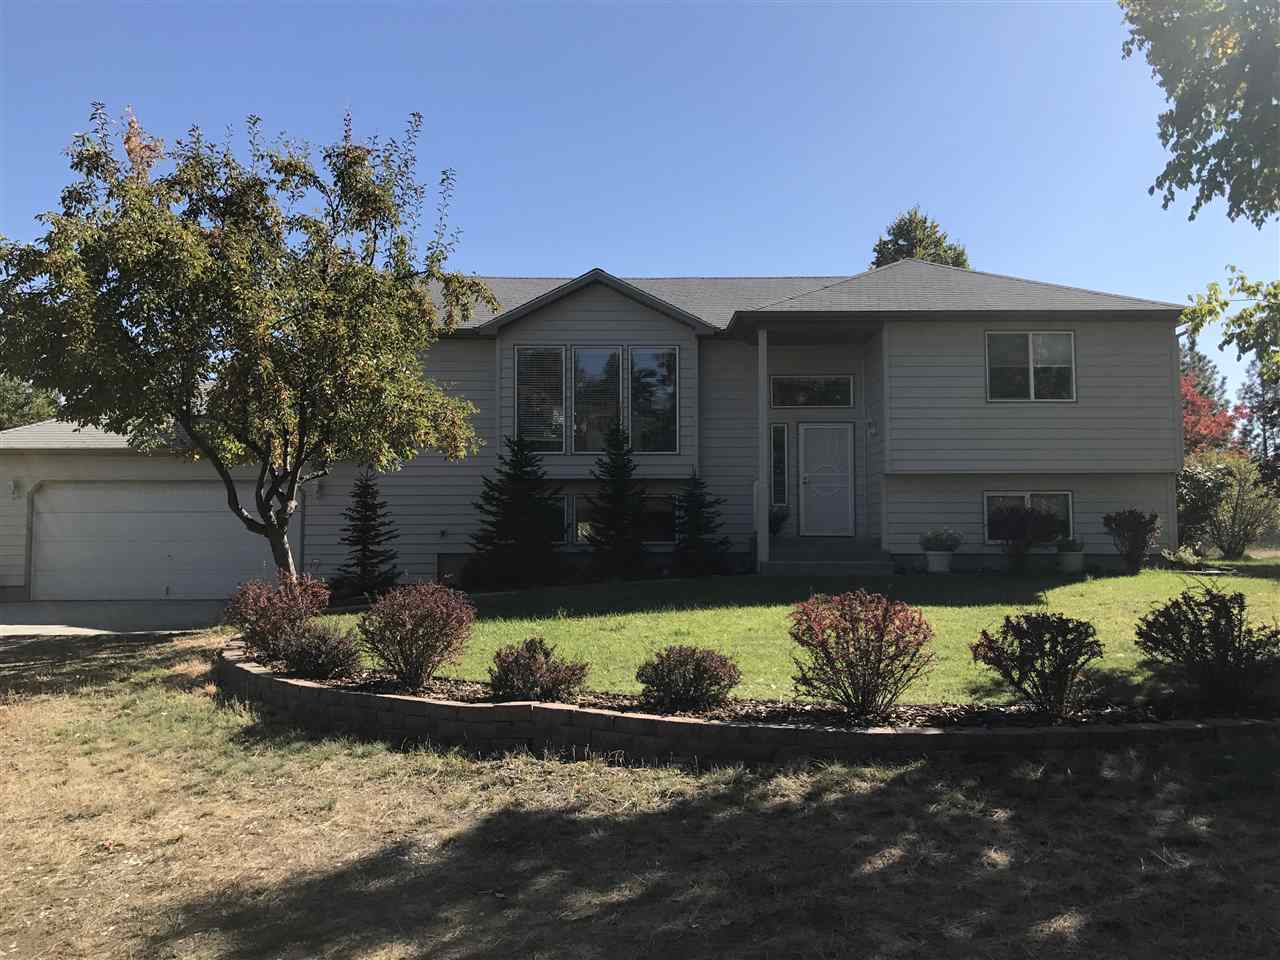 Single Family Home for Sale at 17610 W Deno Road 17610 W Deno Road Medical Lake, Washington 99022 United States